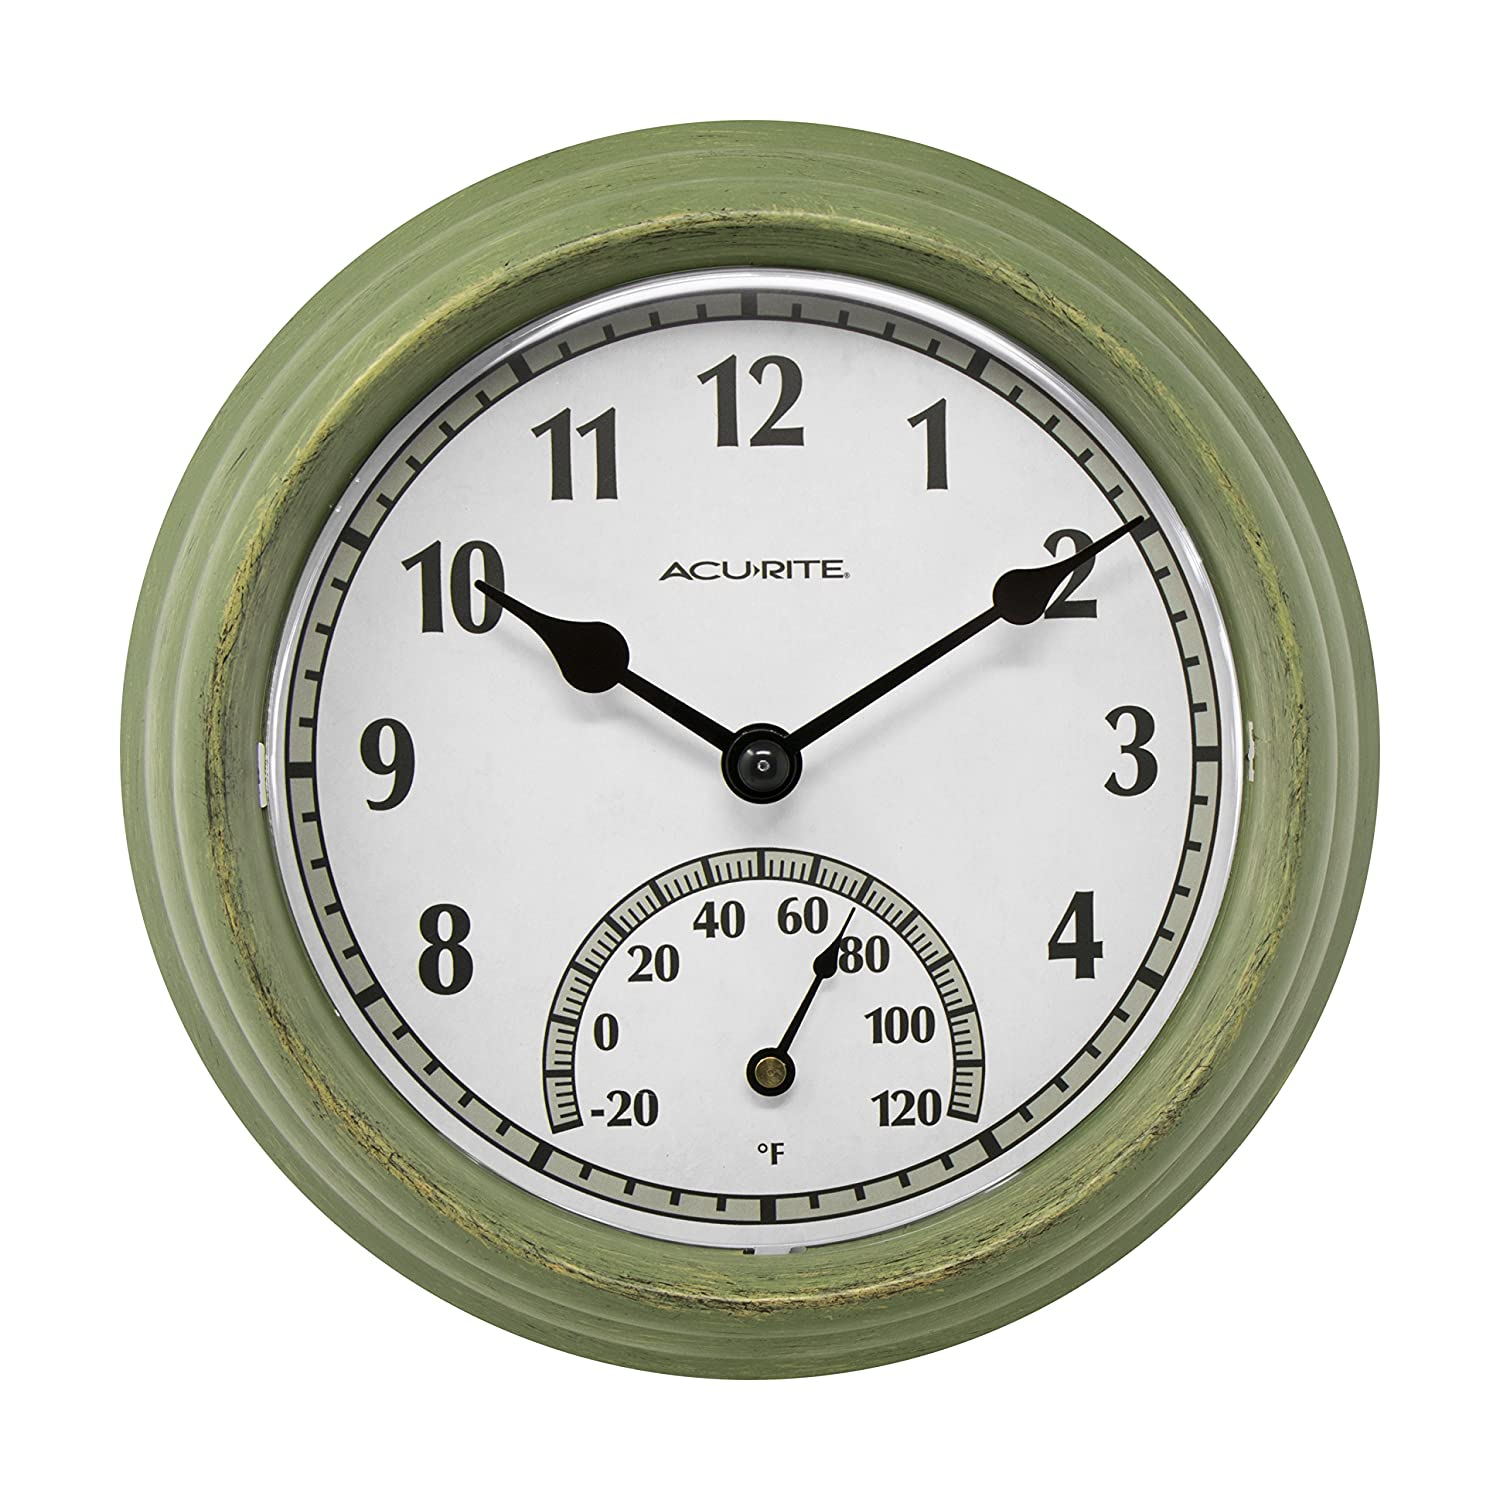 AcuRite 02470 Rustic Green Outdoor Clock with Thermometer, 8.5 8.5 Chaney Instruments